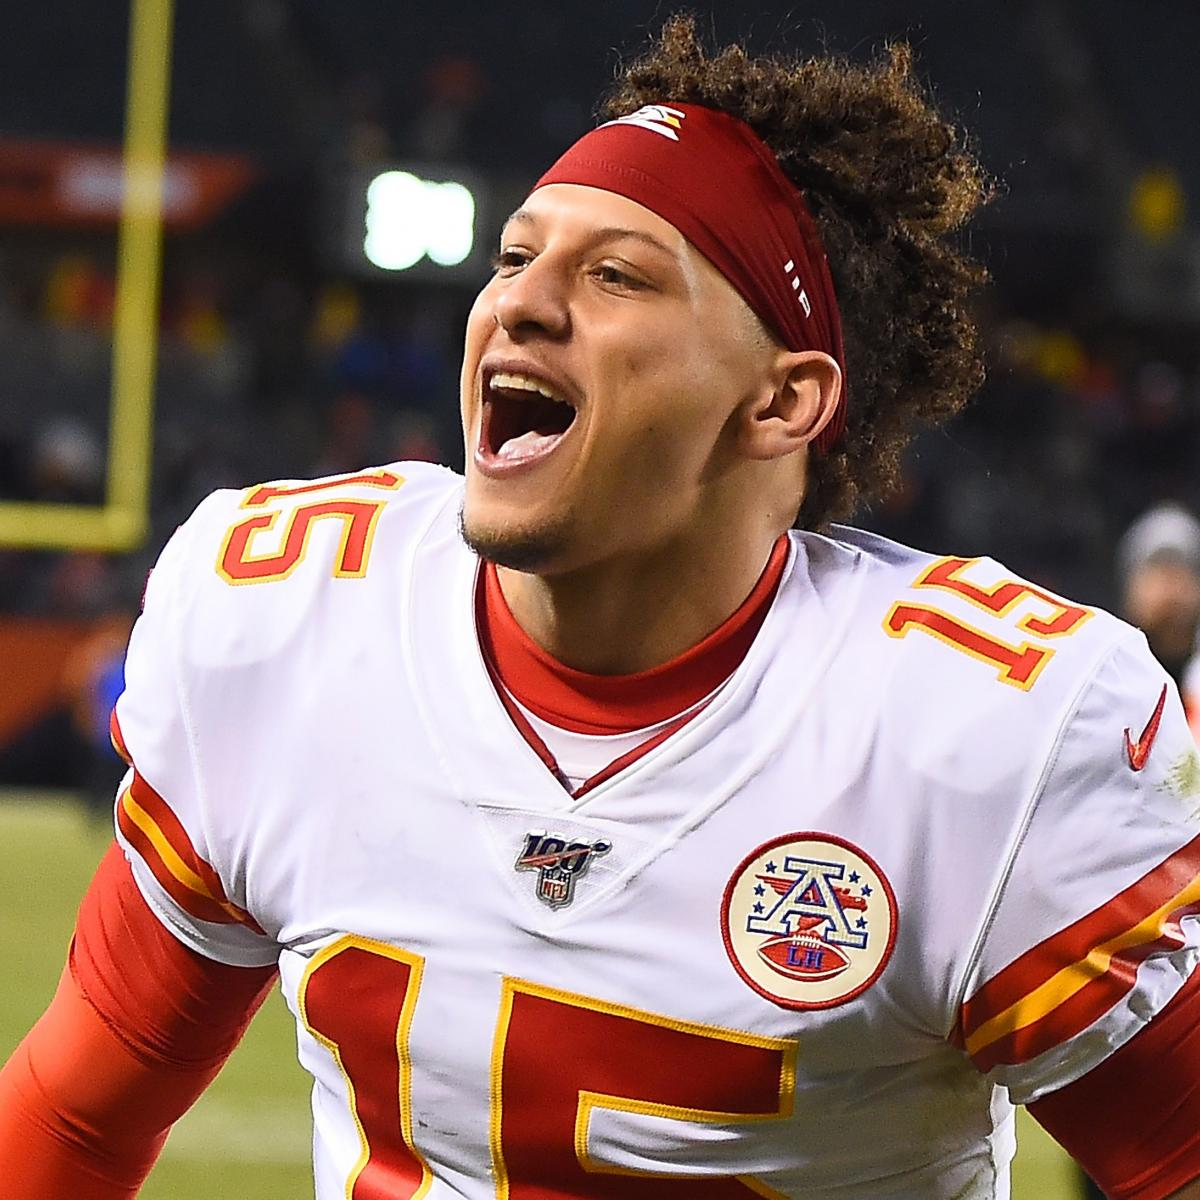 Chiefs Peaking Entering the Playoffs Could Be Trouble for AFC